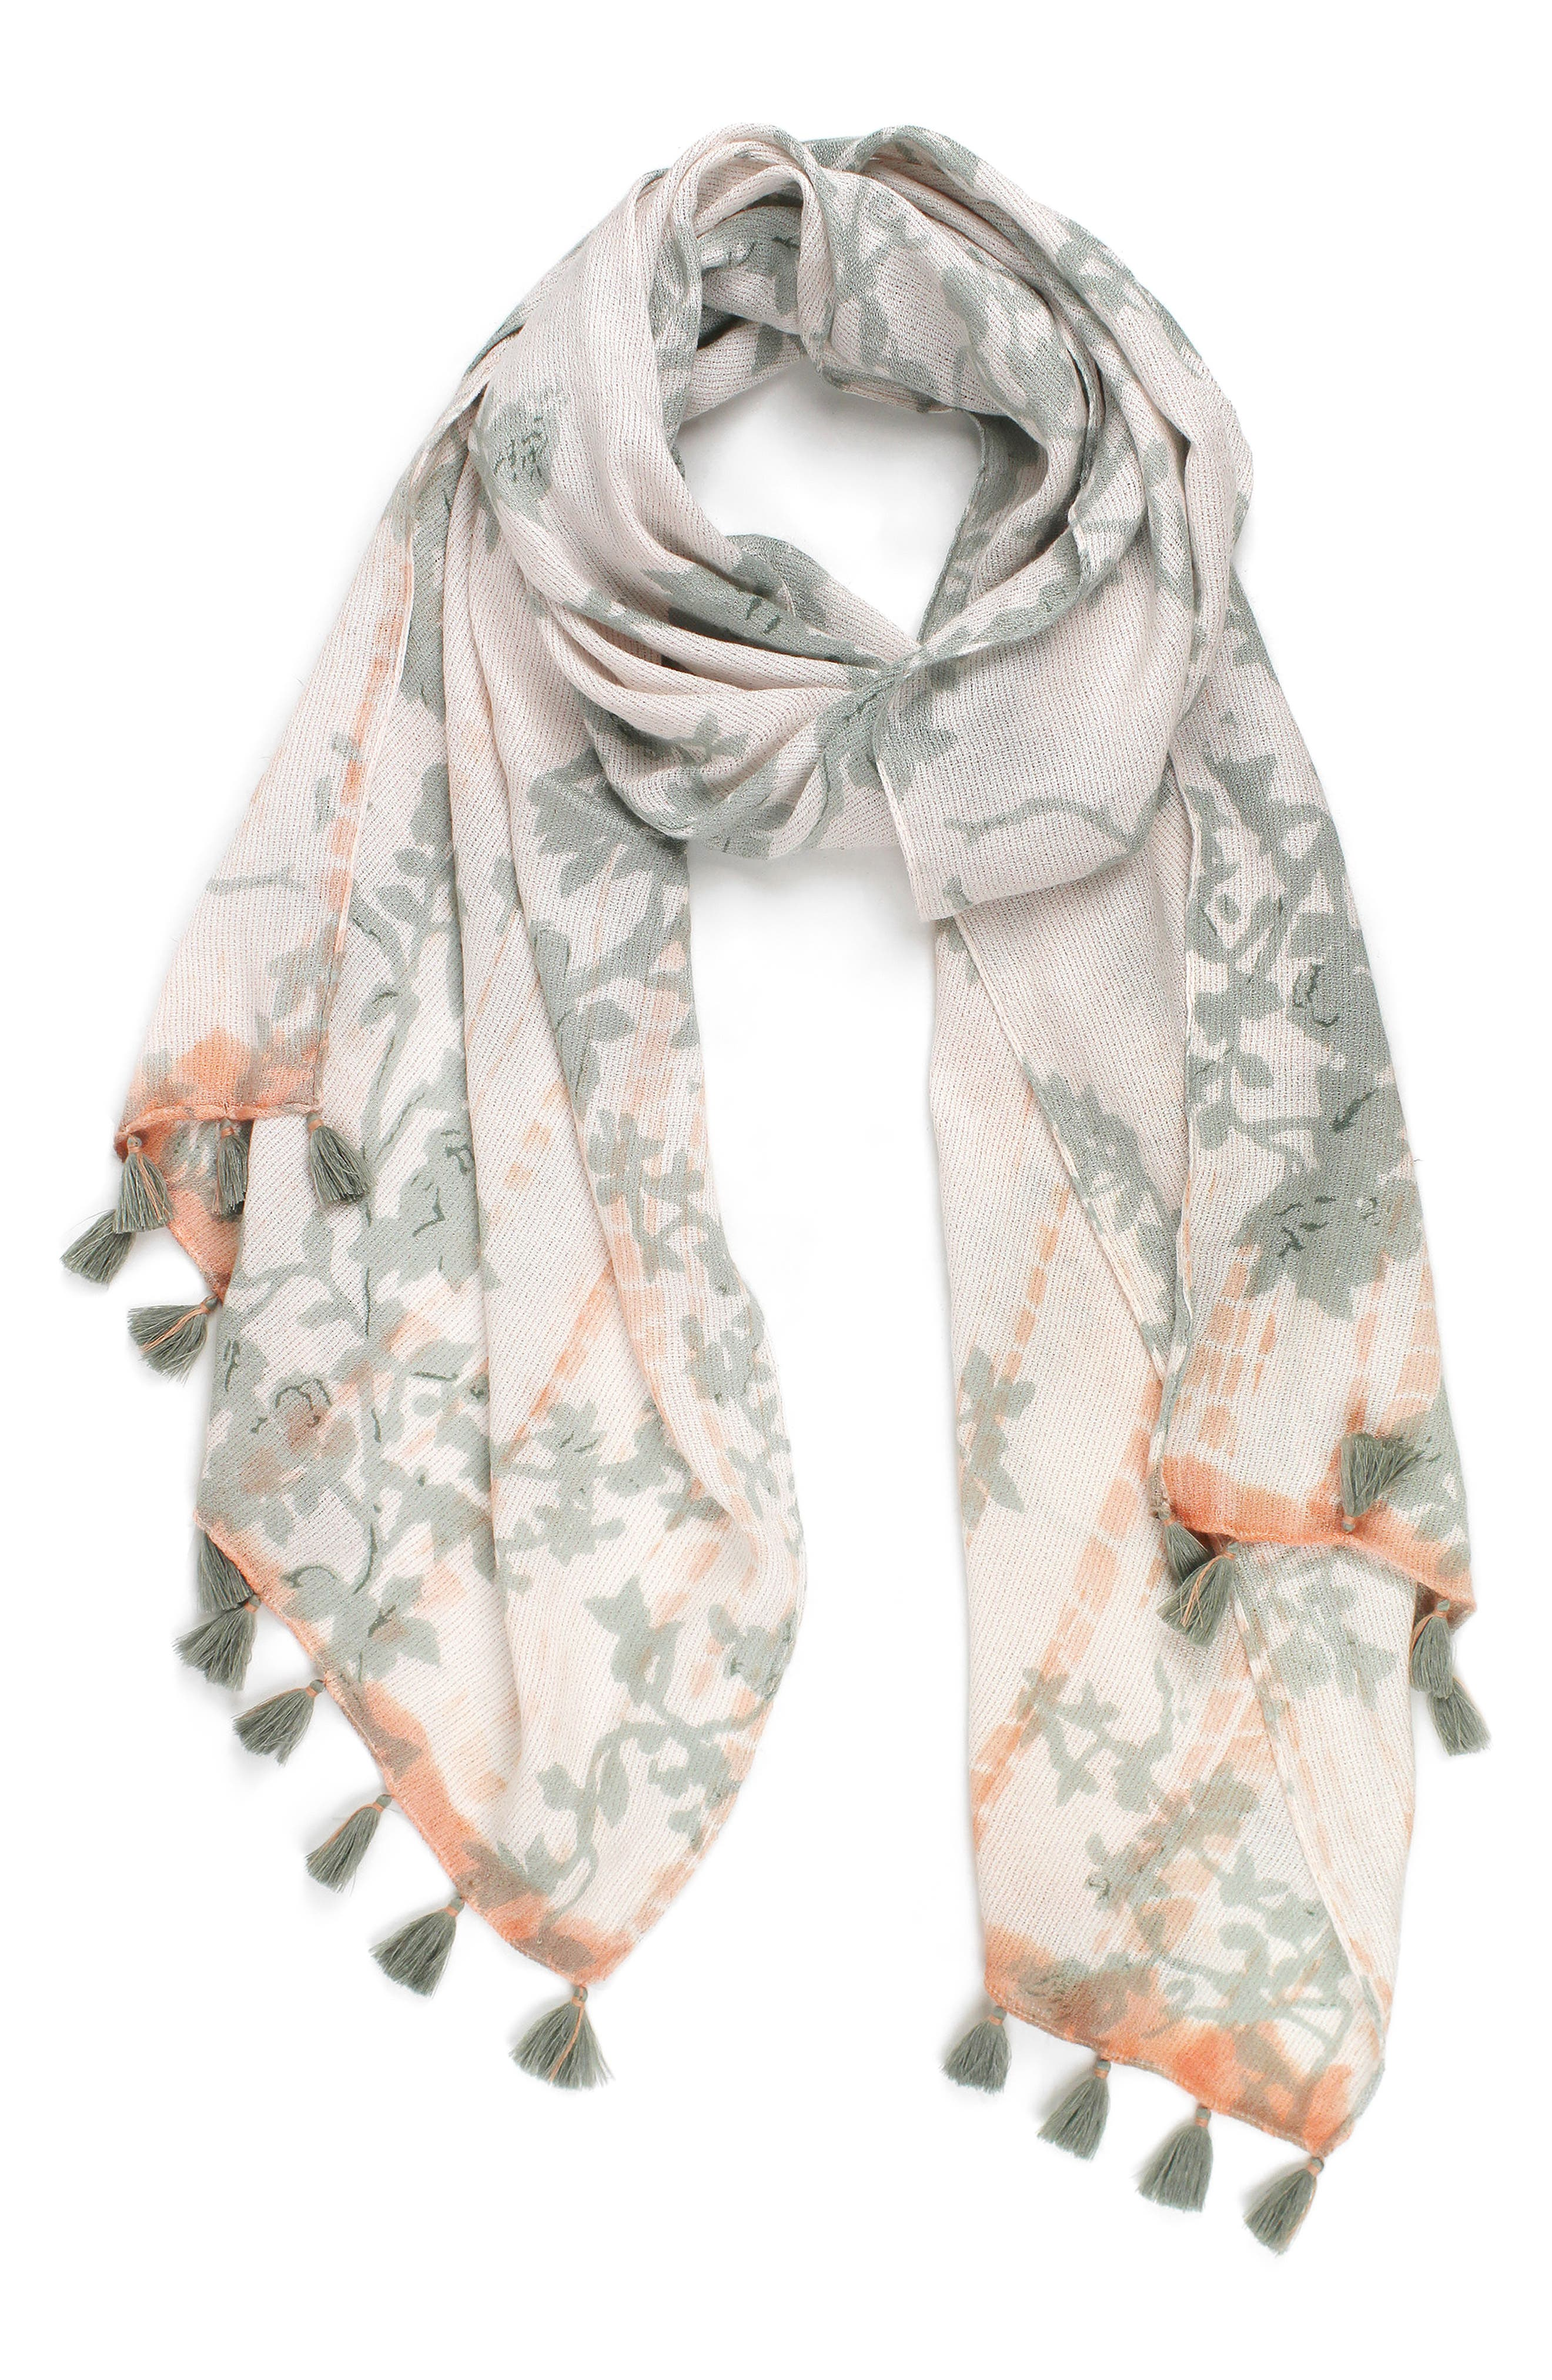 Tie Dye Garden Scarf,                         Main,                         color, Oyster Grey/ White